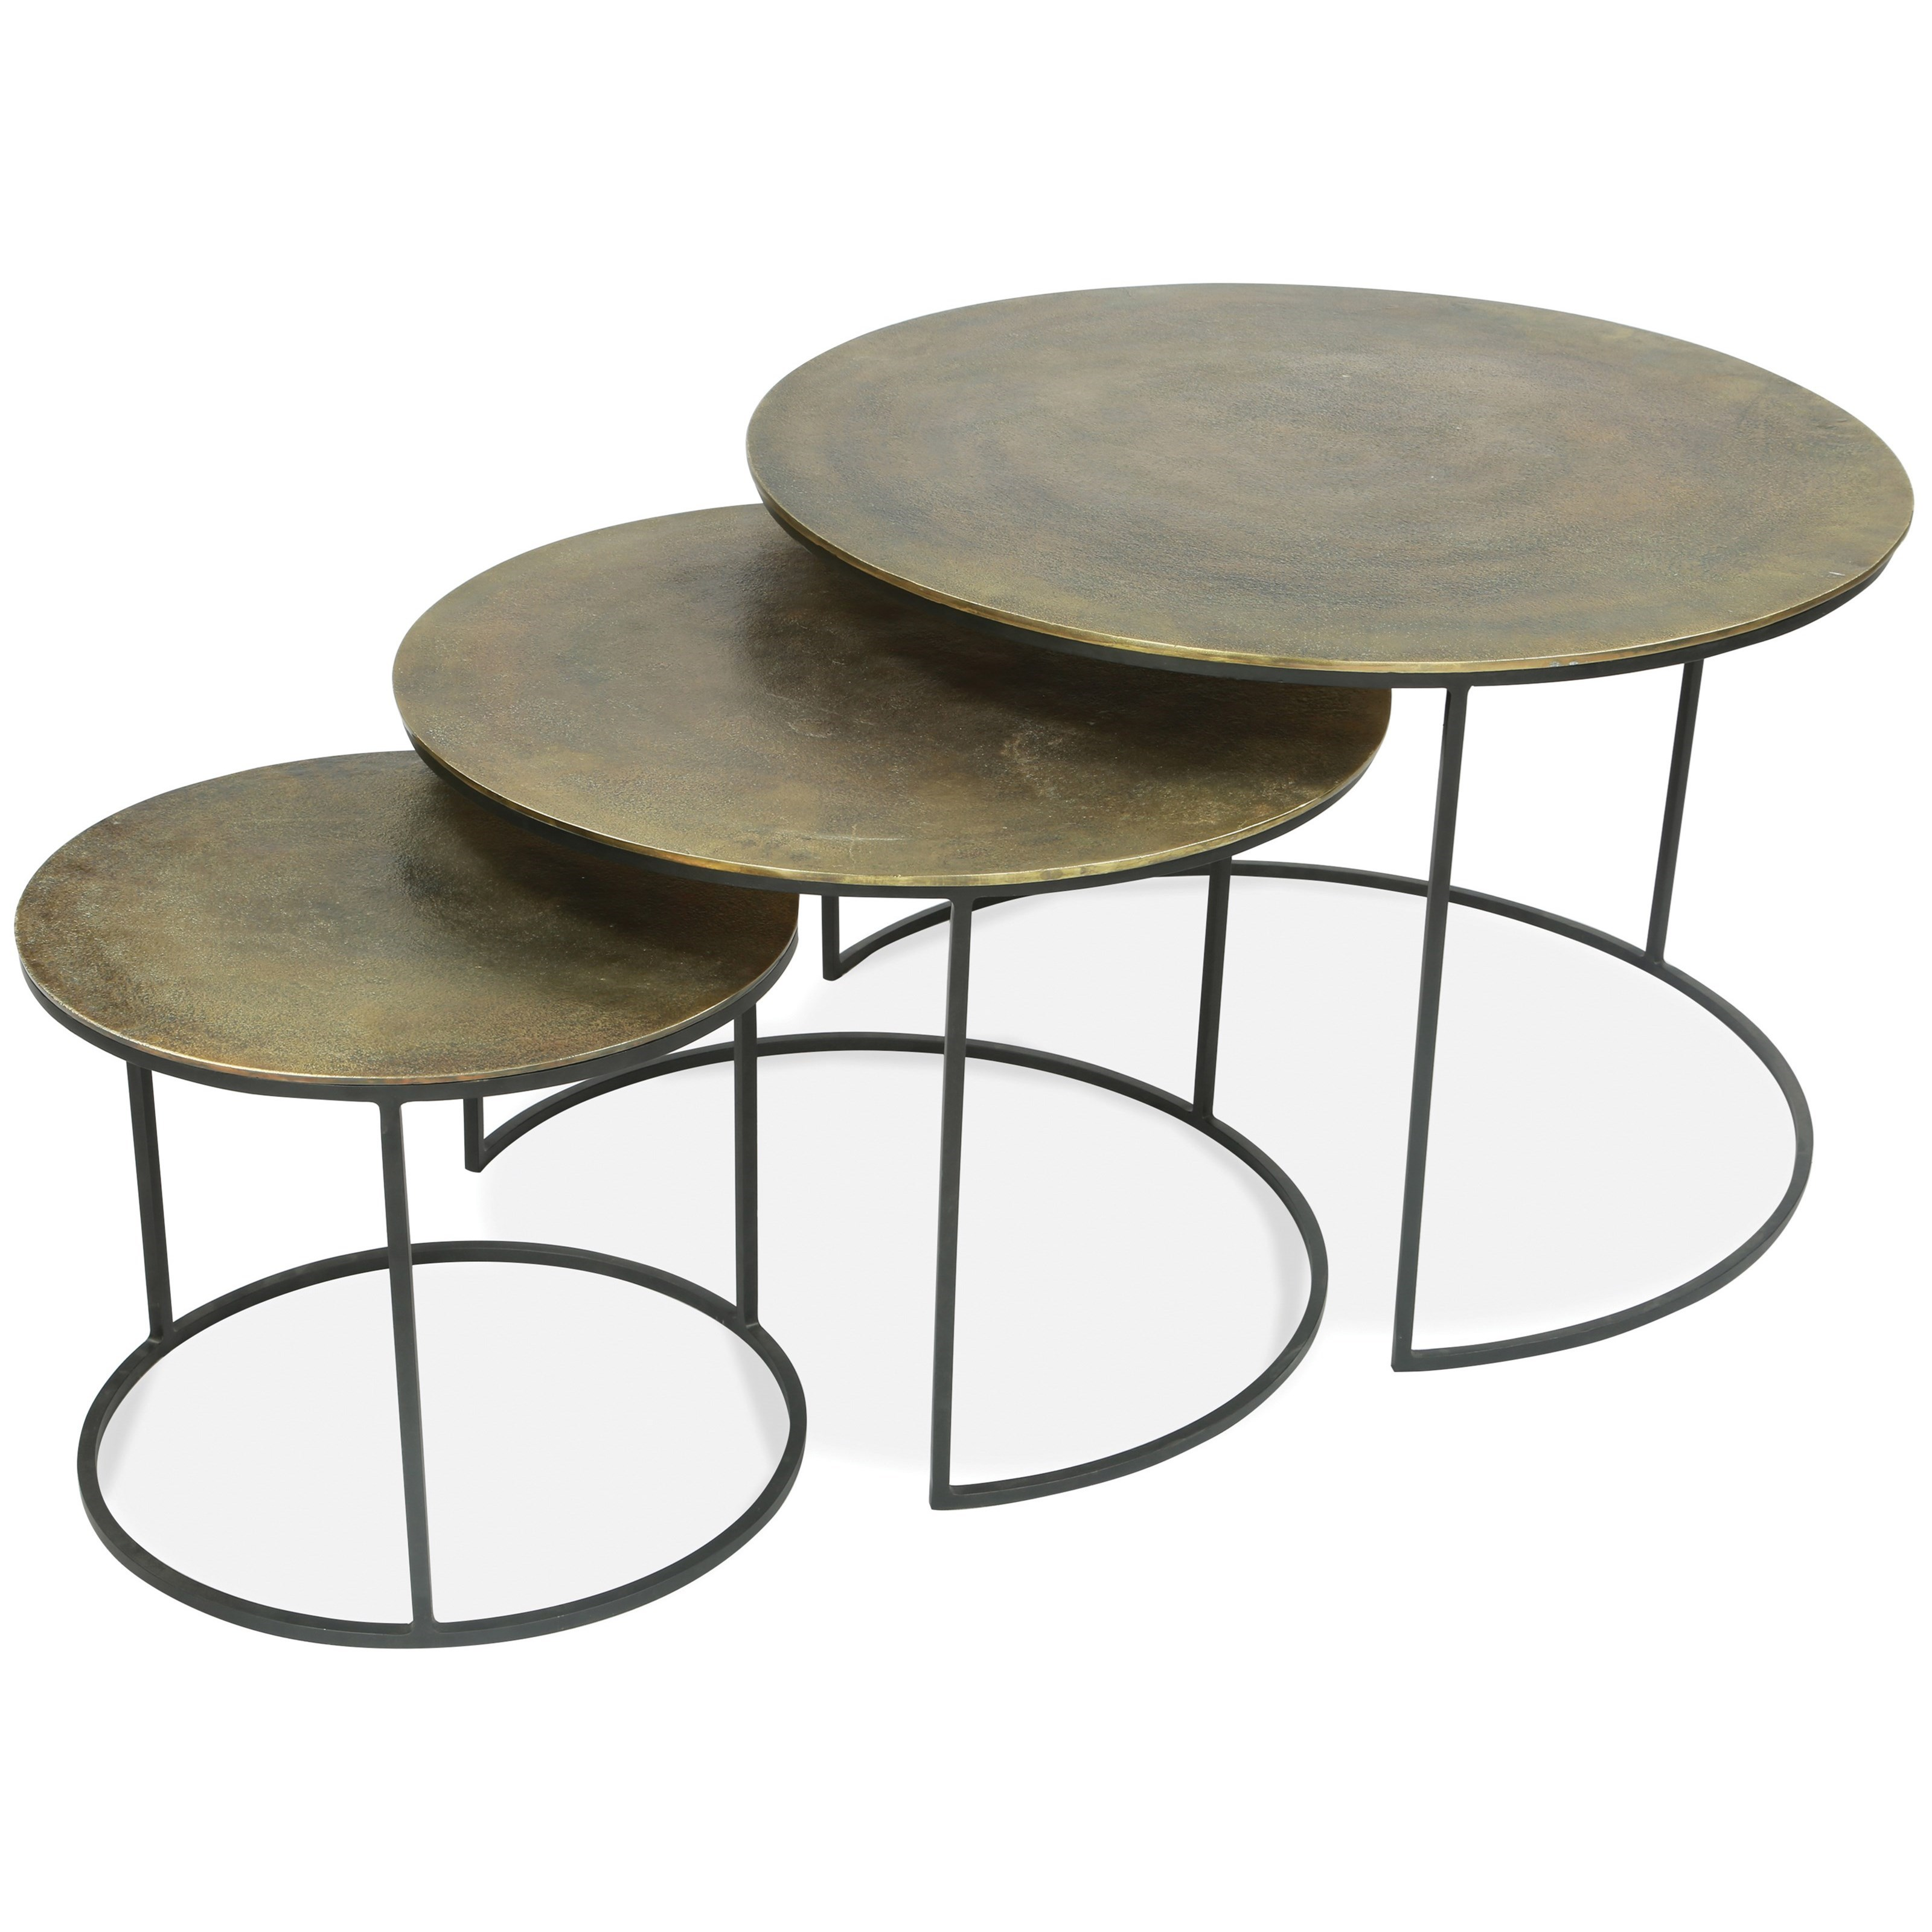 Riverside Furniture Portia 53202 Nesting Coffee Tables With Aluminum Wrapped Tops Hudson S Furniture Cocktail Coffee Tables